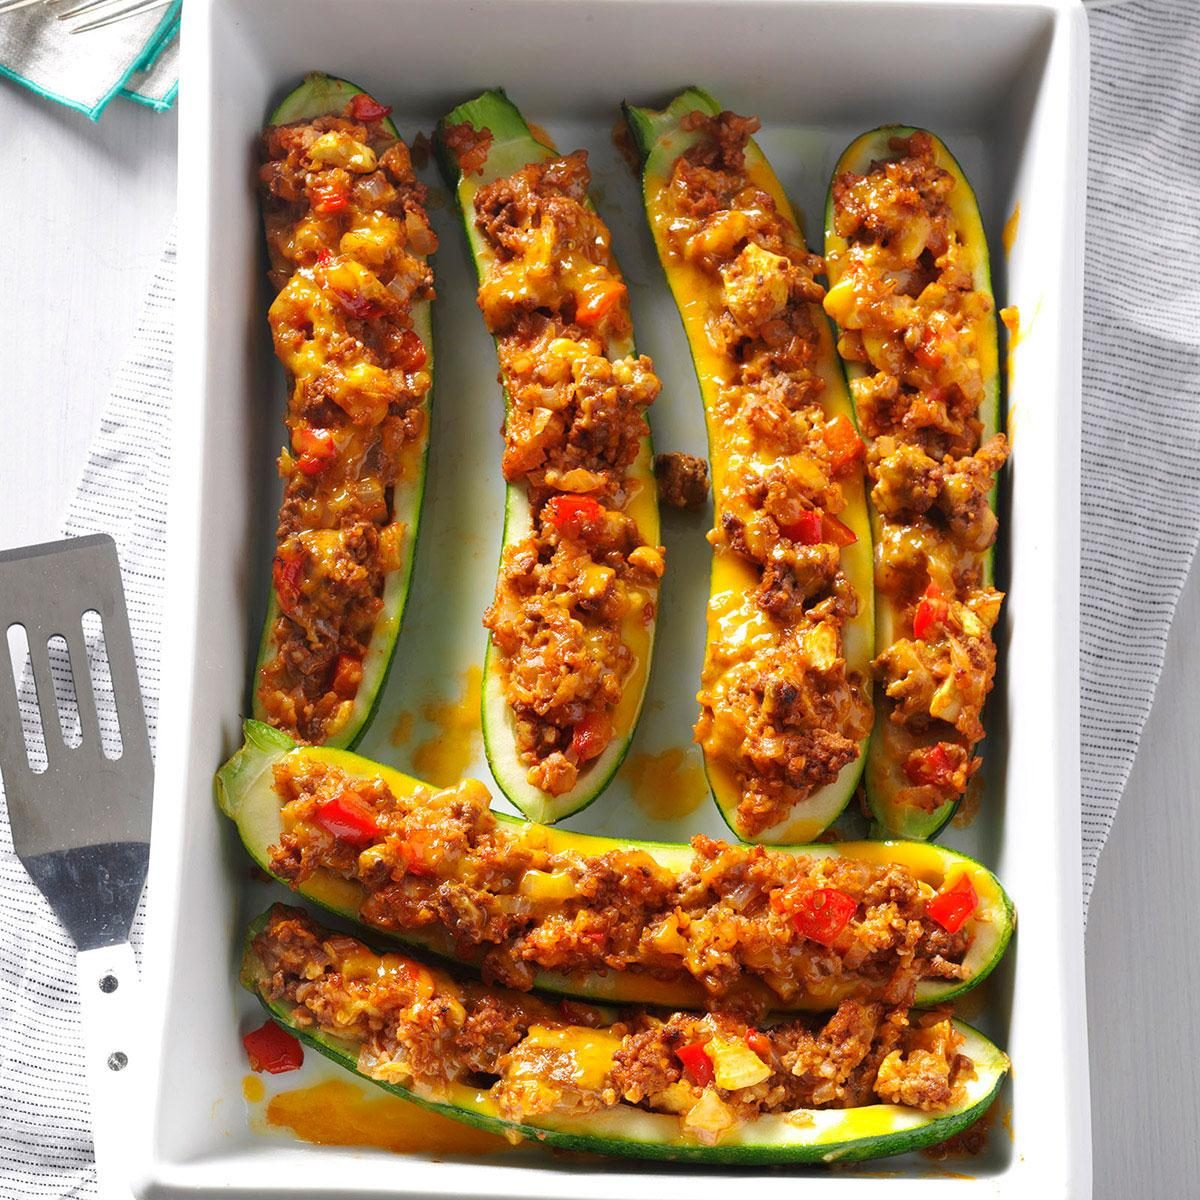 Day 18: Beef & Bulgur-Stuffed Zucchini Boats